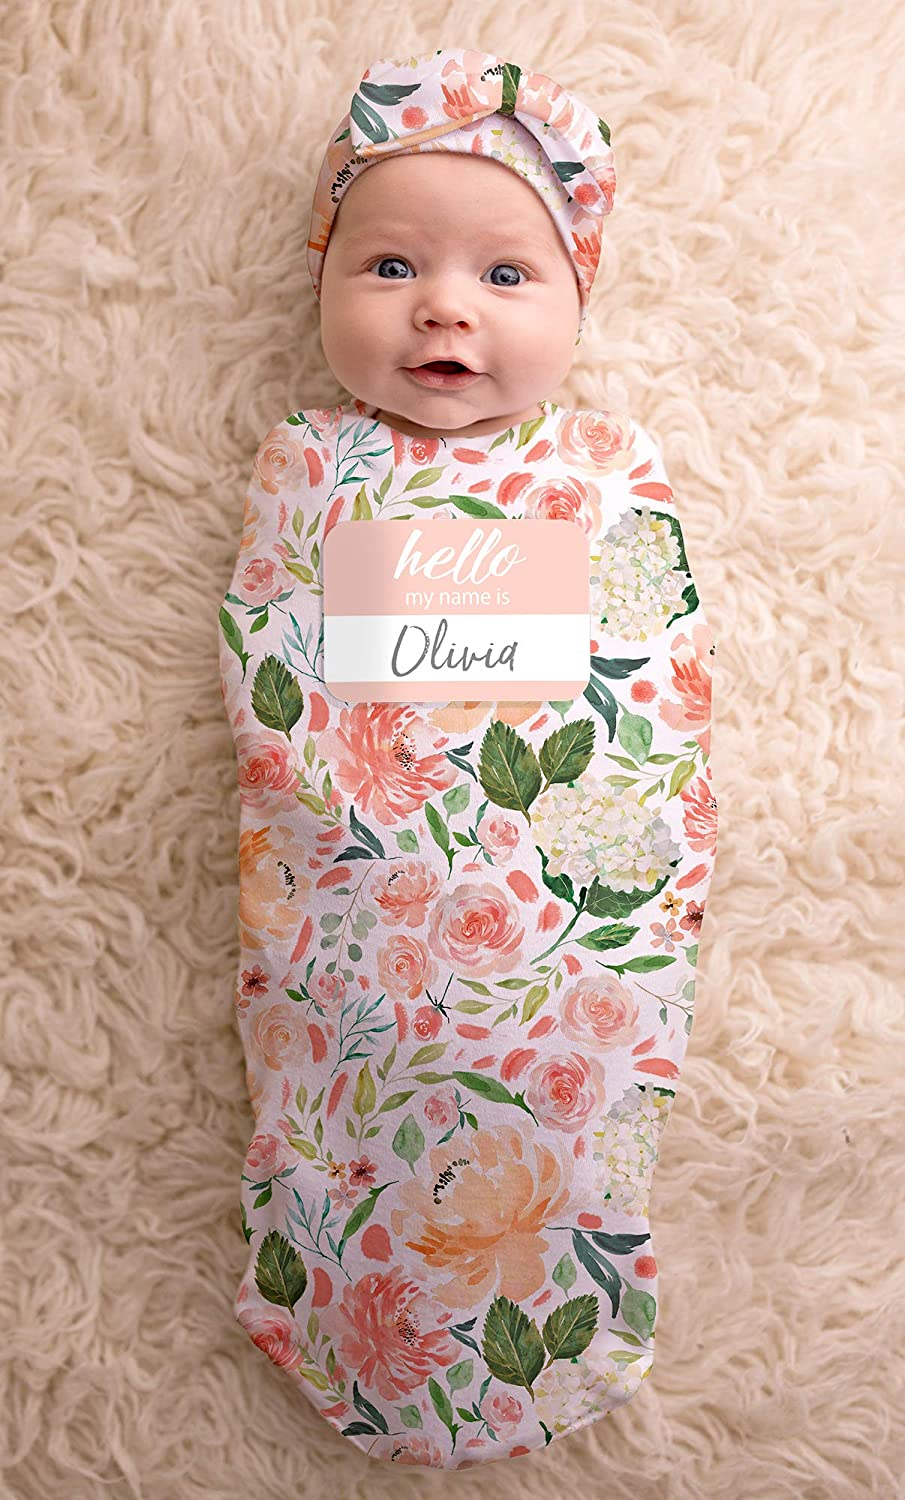 Itzy Ritzy Cocoon and Hat Swaddle Set, Cutie Cocoon Includes Name Announcement Card and Matching Jersey Knit Cocoon and Hat Set, Perfect for Newborn Photos, For Ages 0 to 3 Months, Floral